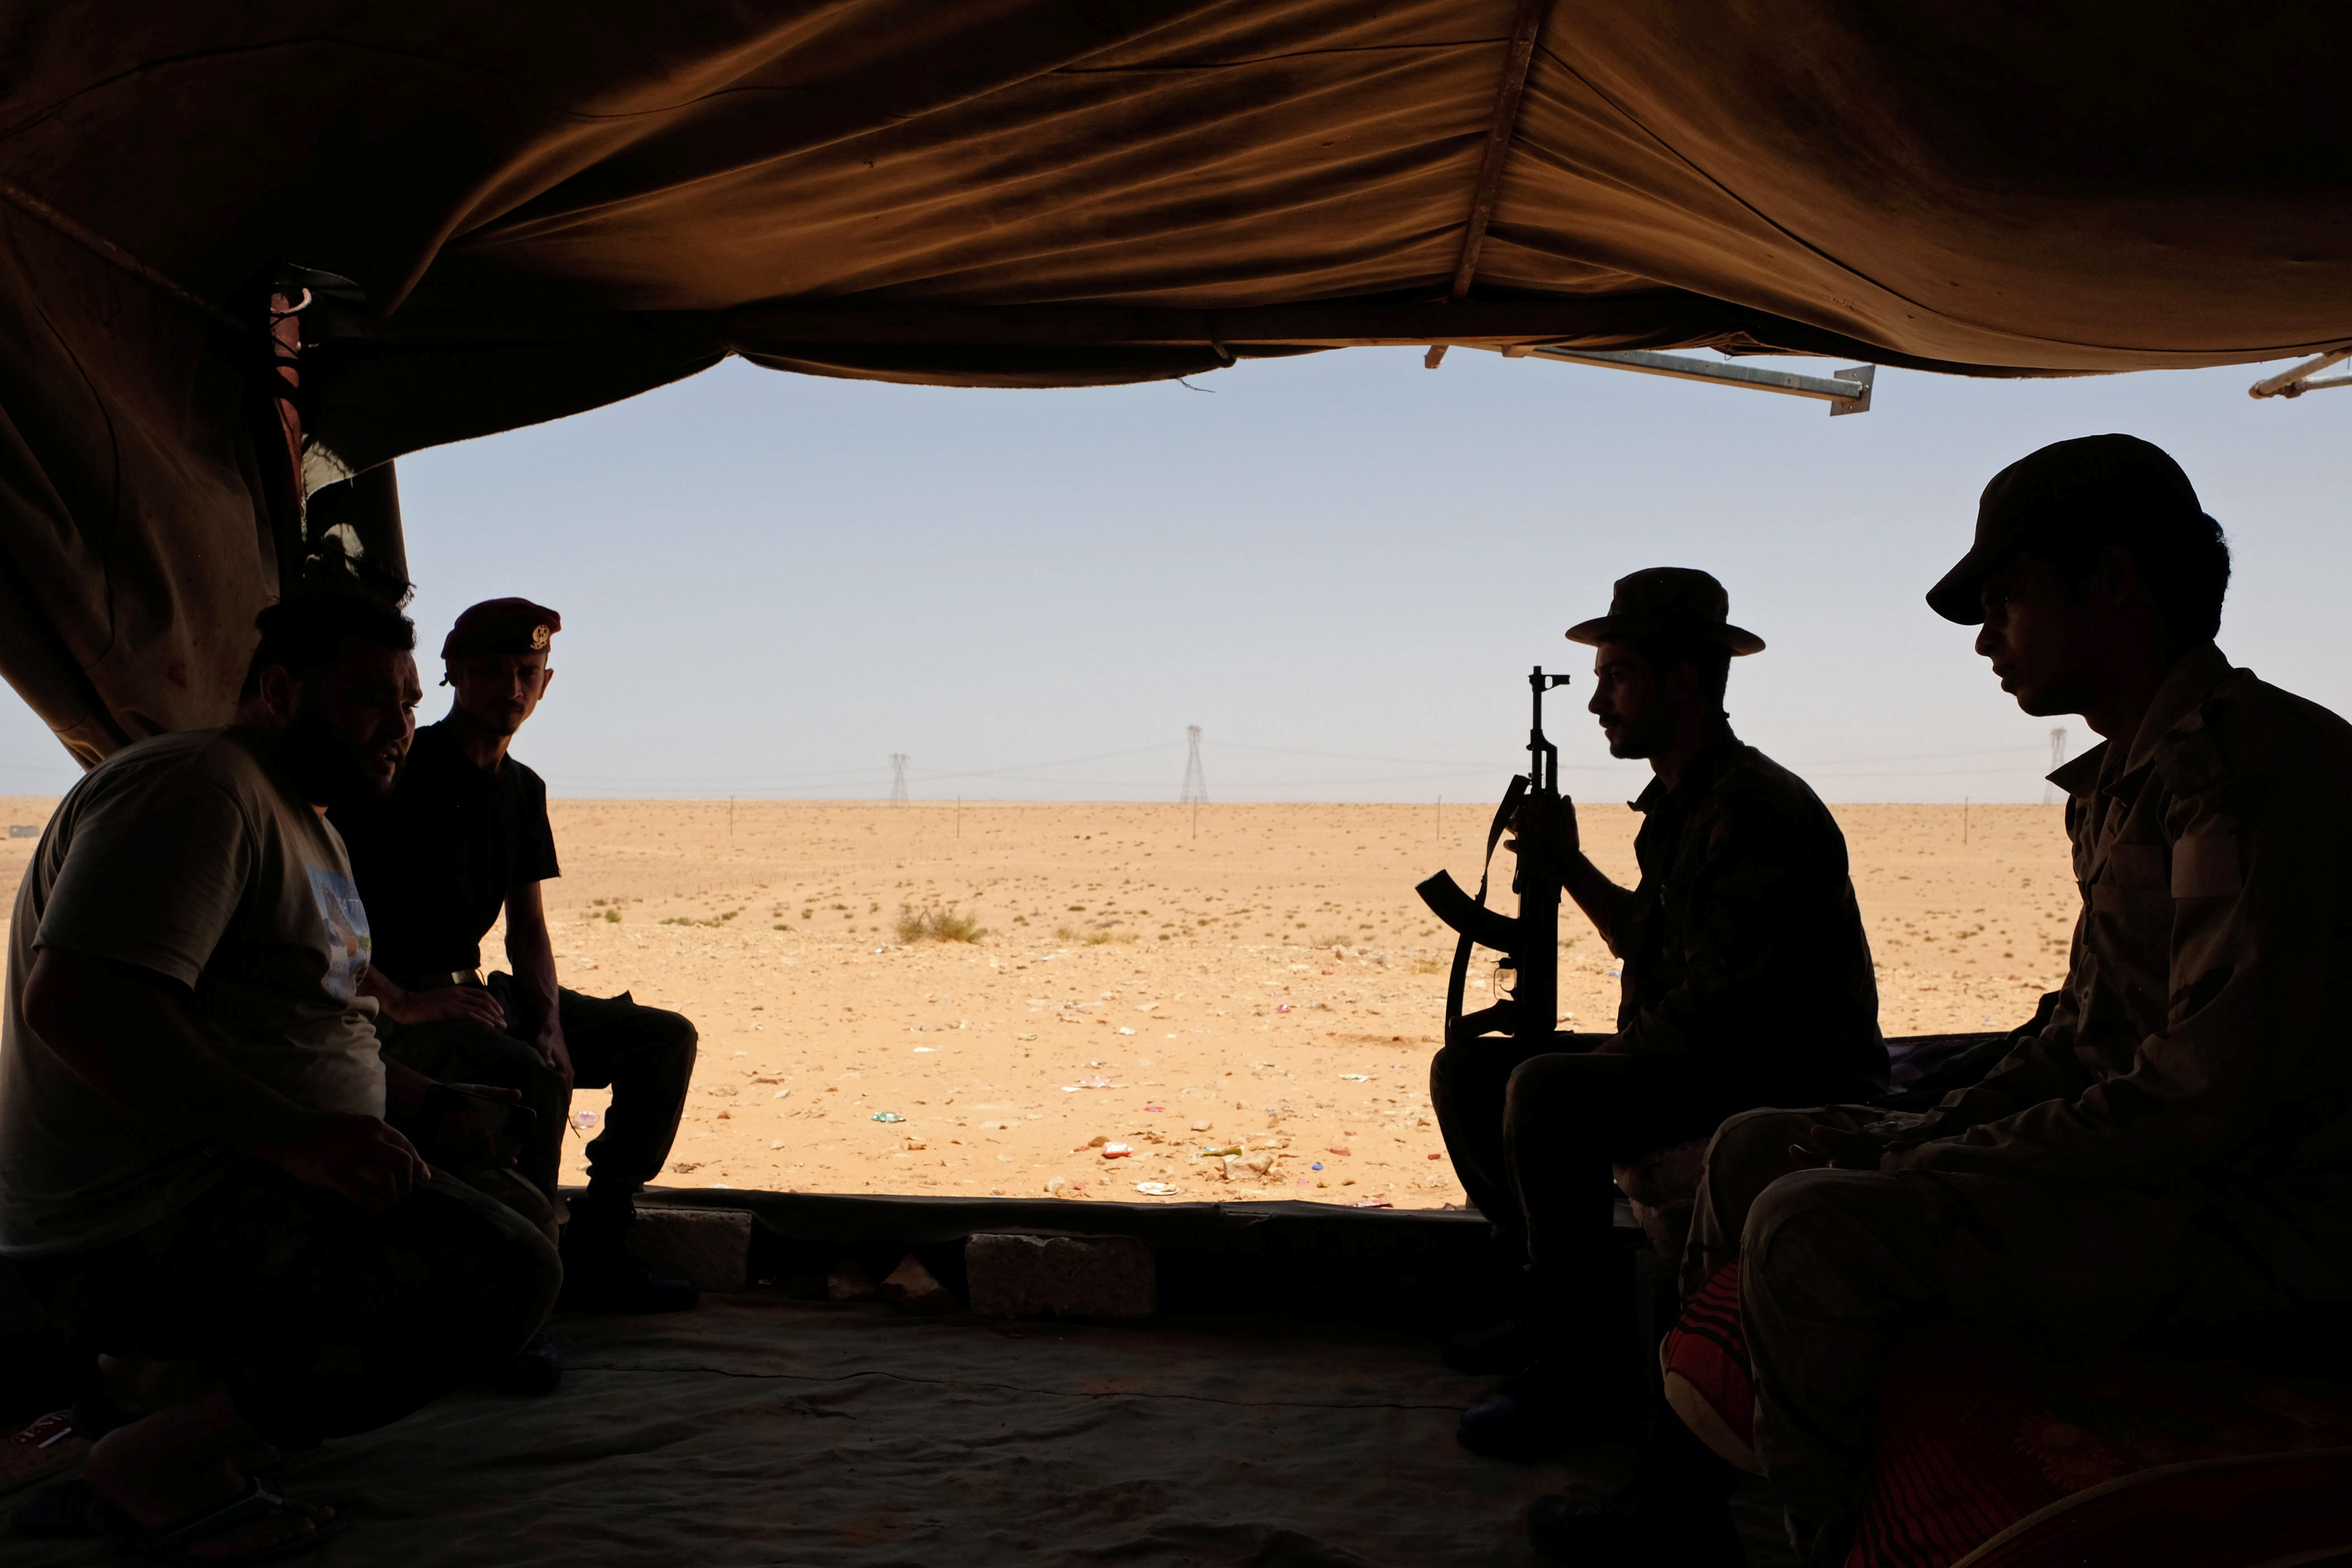 Members of the Libyan National Army (LNA) commanded by Khalifa Haftar sit inside a tent at one their sites in west of Sirte, Libya August 19, 2020. REUTERS/Esam Omran Al-Fetori